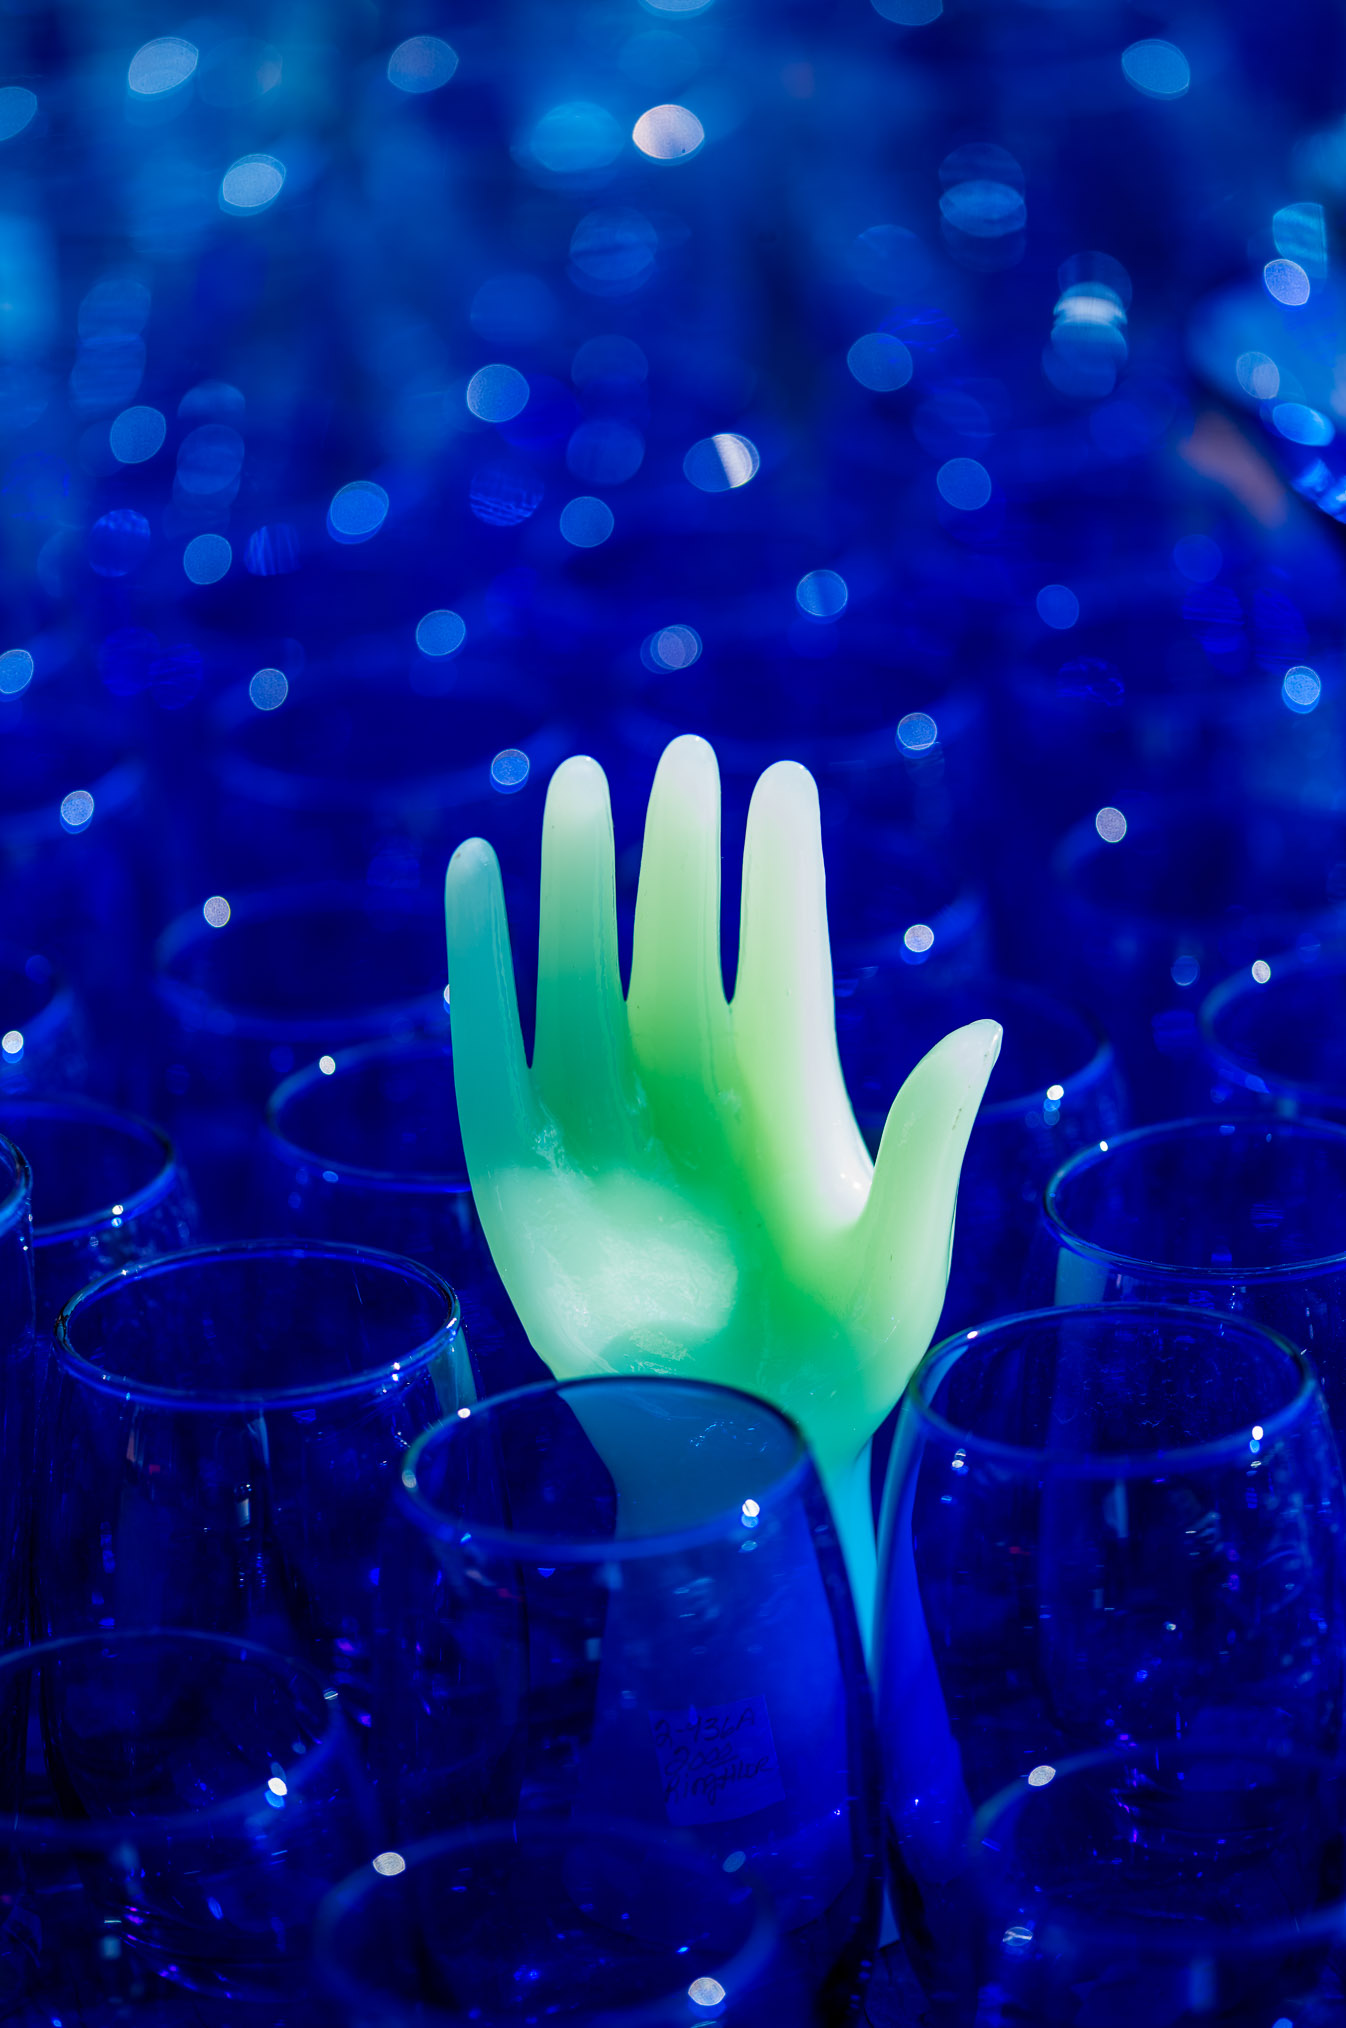 Green Hand Blue Glass.jpg